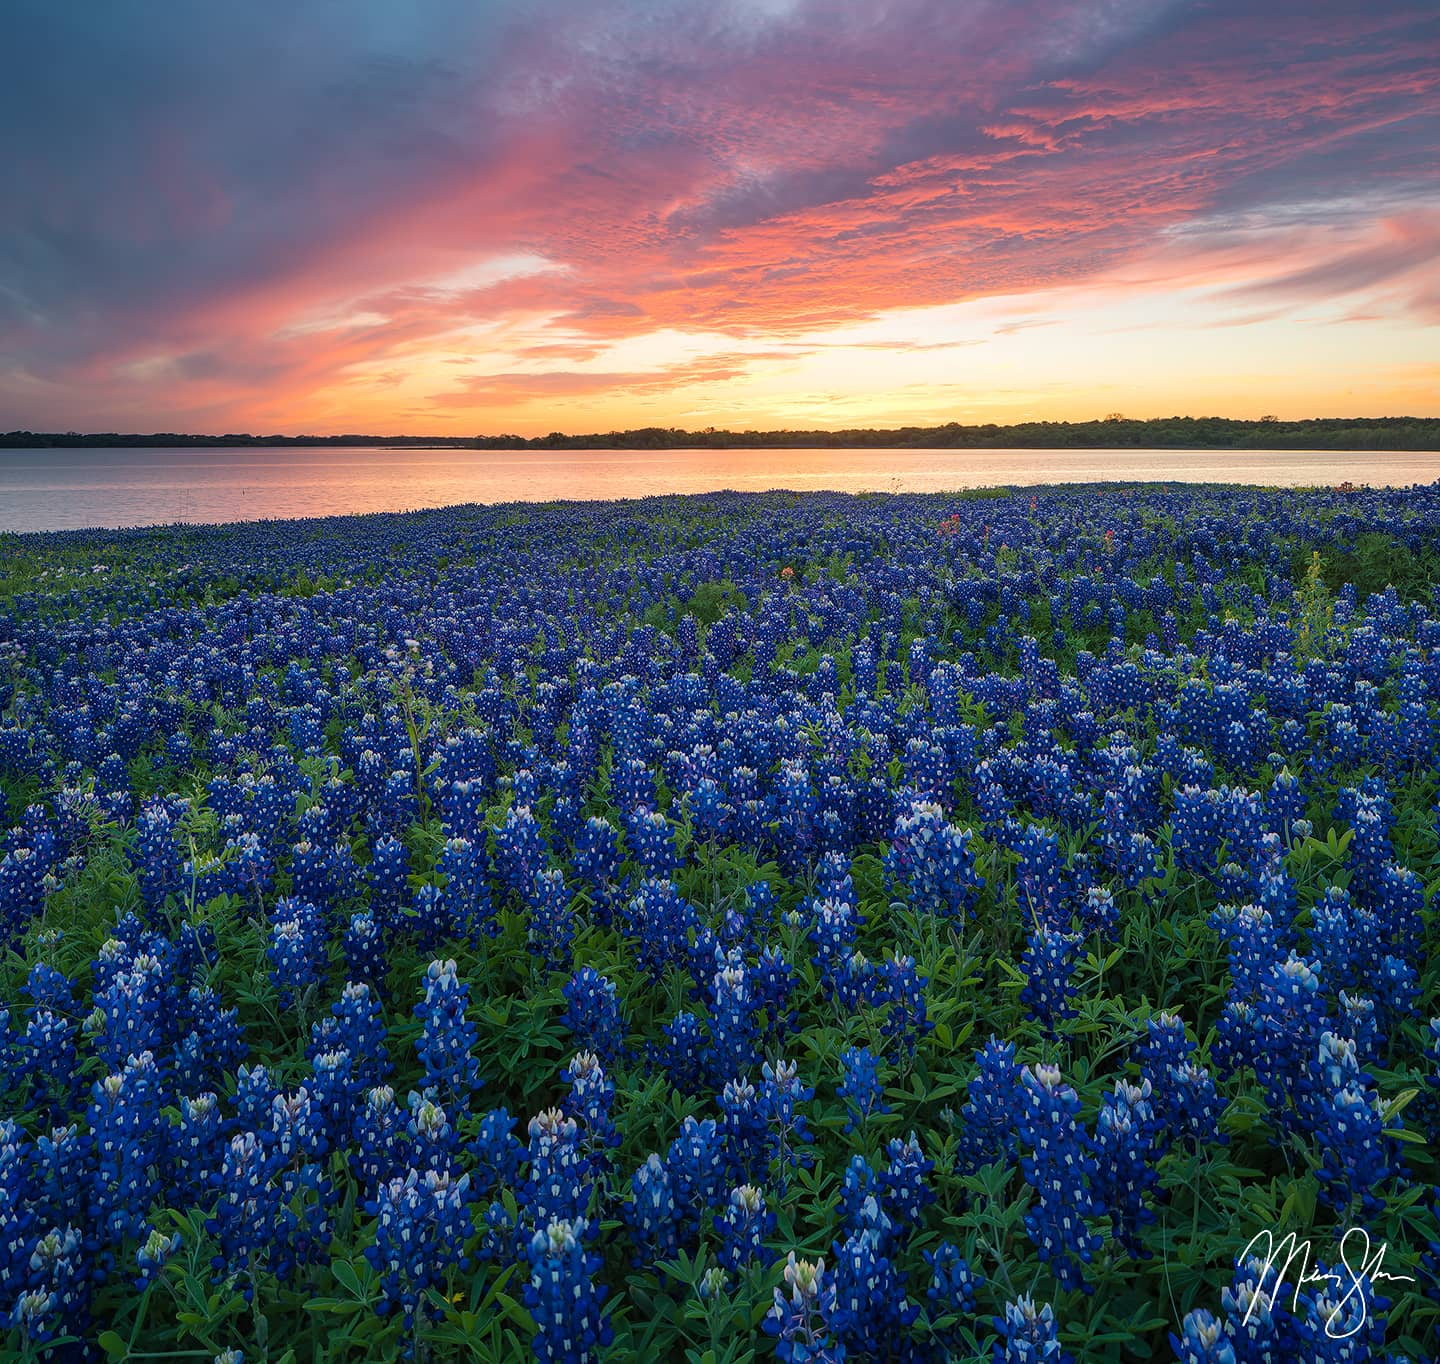 Open edition fine art print of Bluebonnets Over Ennis from Mickey Shannon Photography. Location: Bardwell Lake, Ennis, Texas